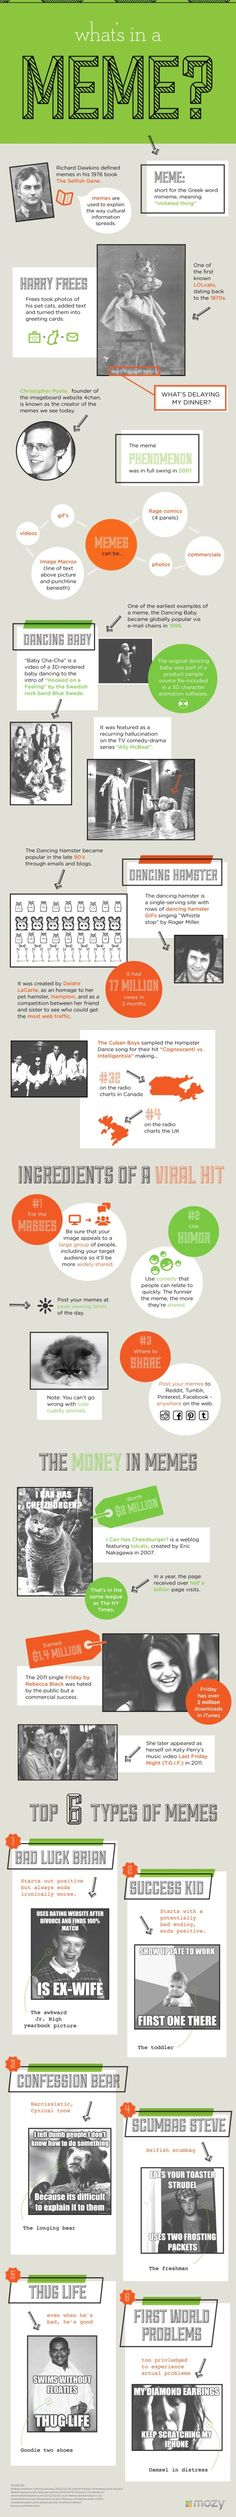 Are memes a mystery?  What's their history?  Can you create a meme and make it go viral?  If you're confused about memes, check this infographic for some answers!   Memes are simply social media visuals that hit a cultural nerve, and go vira